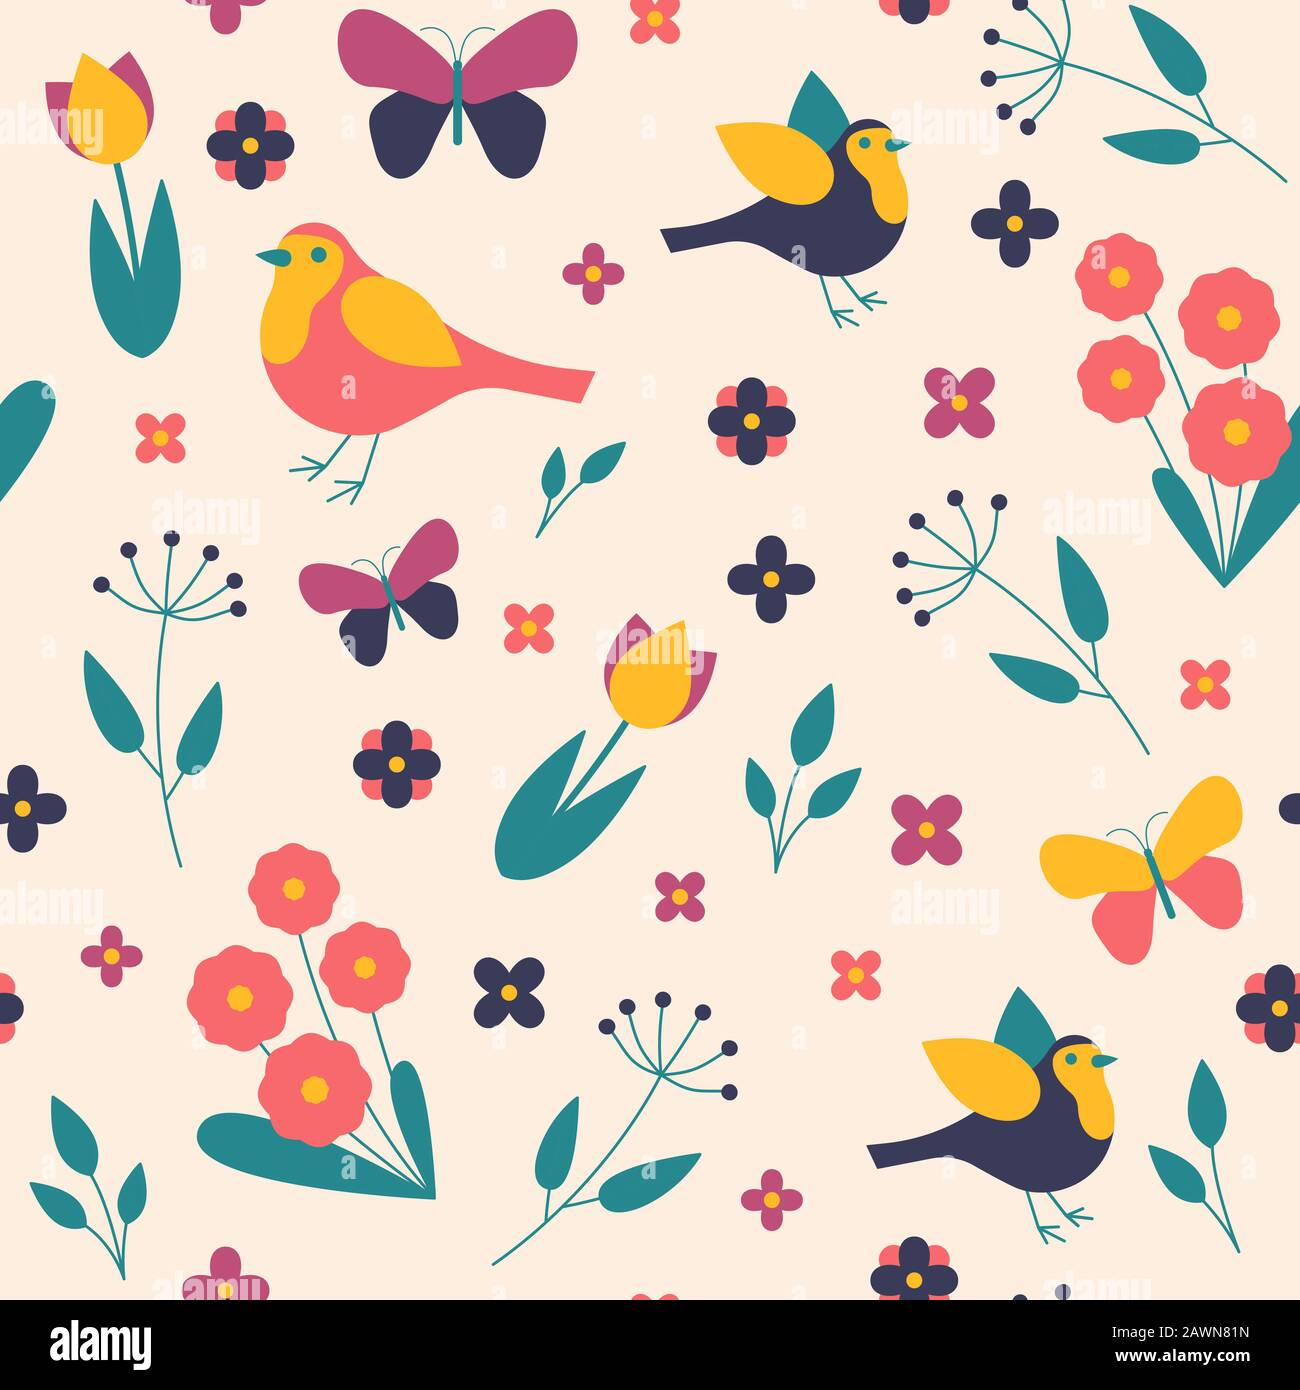 Seamless pattern seasons spring birds, flowers and leaves Stock Photo